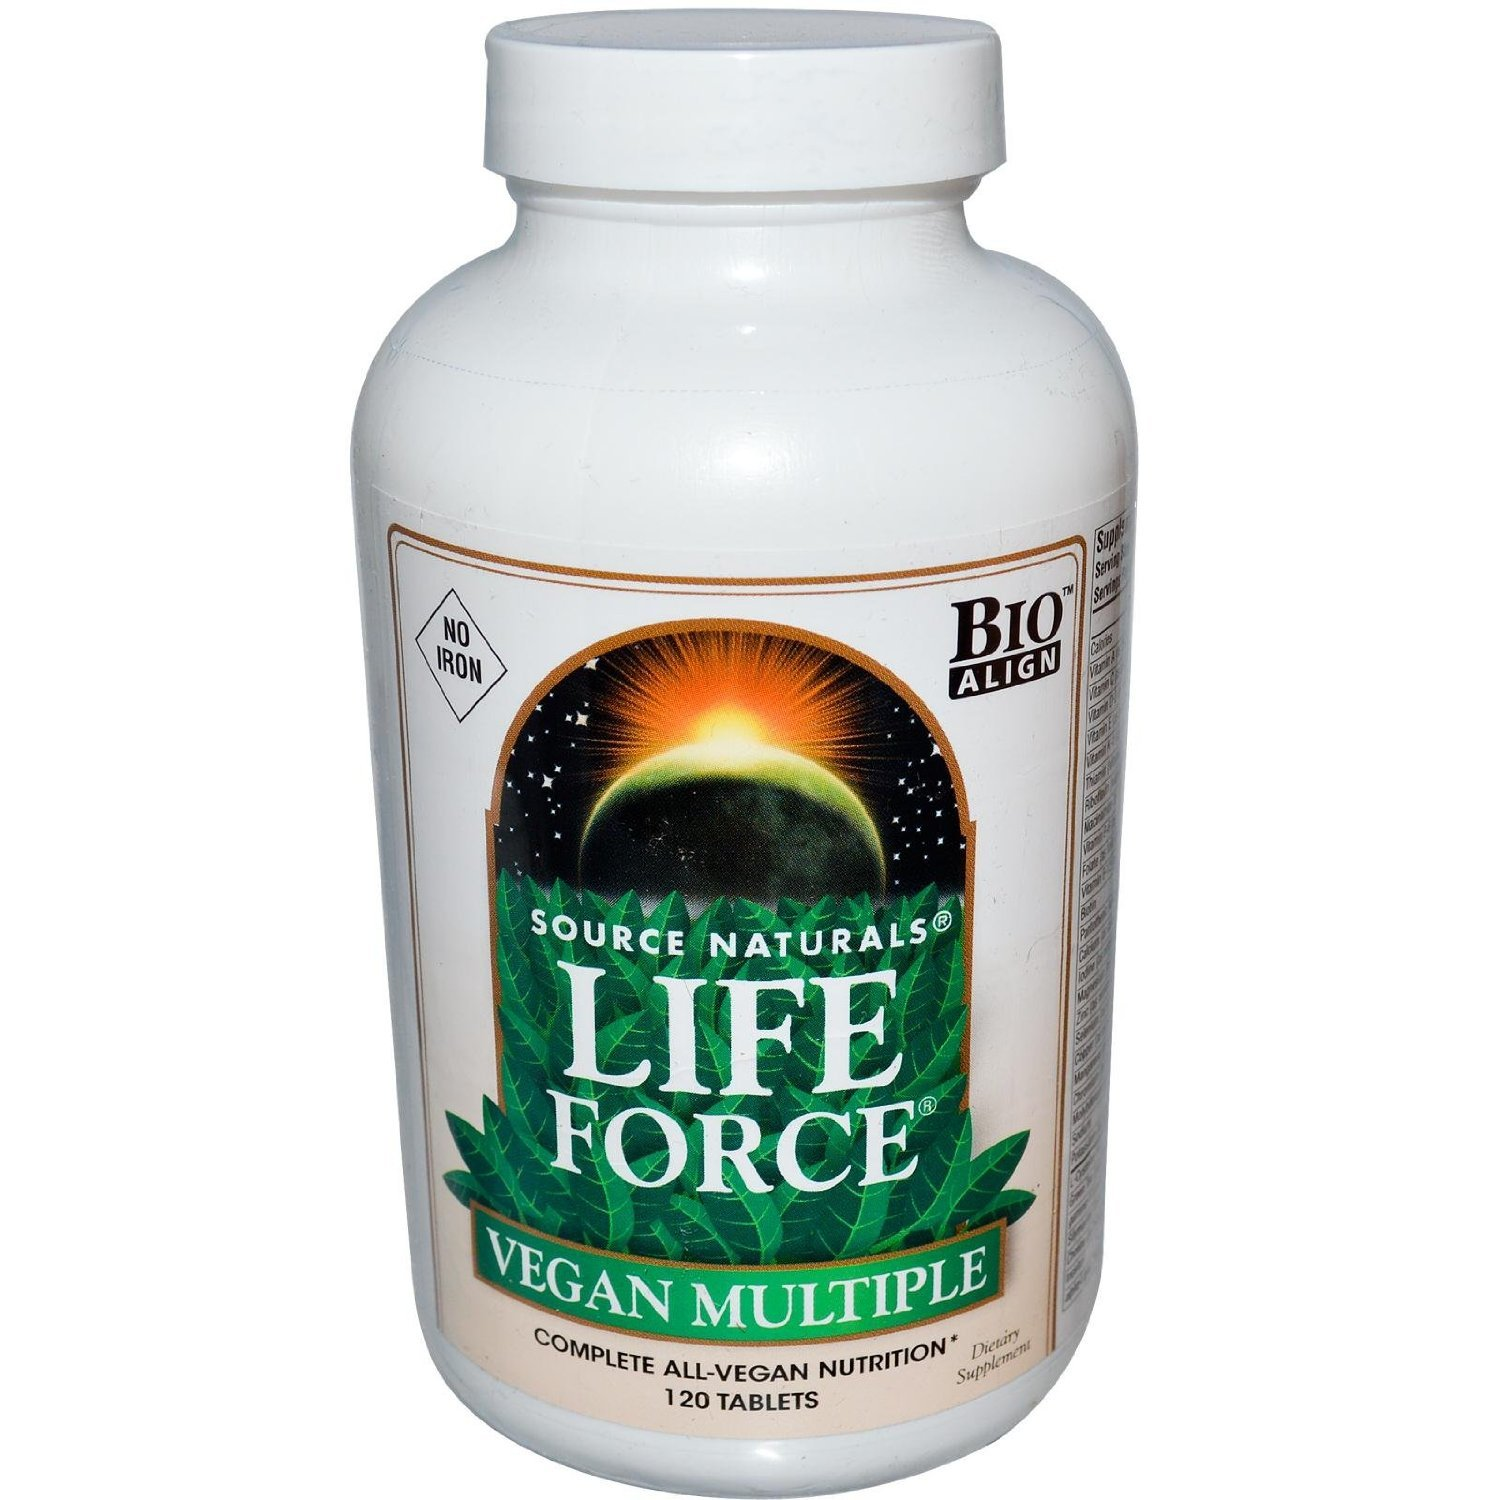 SOURCE NATURALS Life Force Vegan Multiple No Iron Tablet, 120 Count